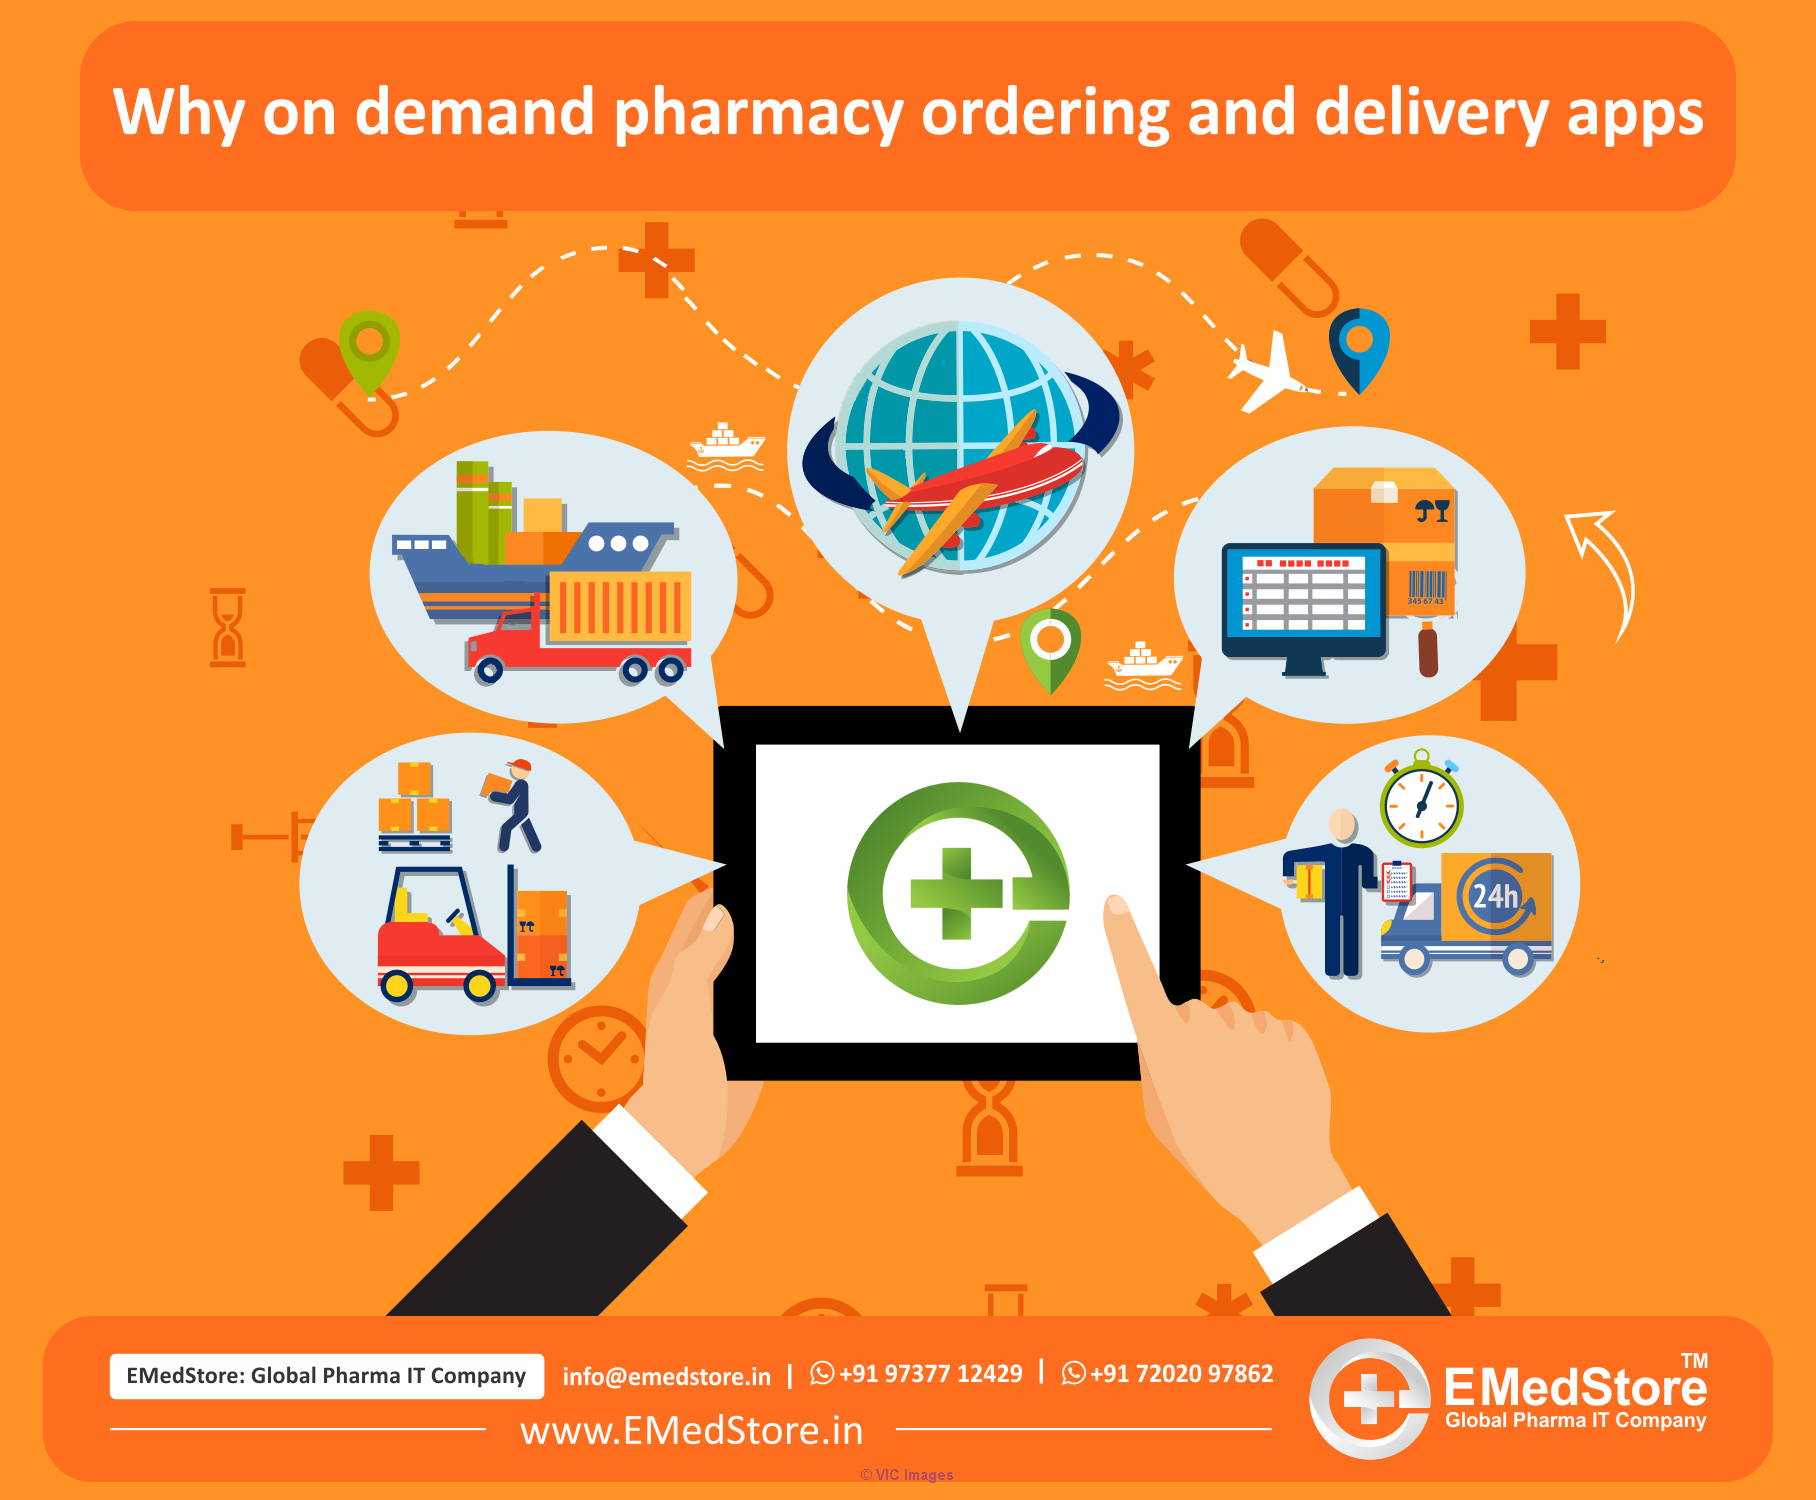 Why on demand pharmacy ordering and delivery apps Ottawa, Ontario, Canada Classifieds